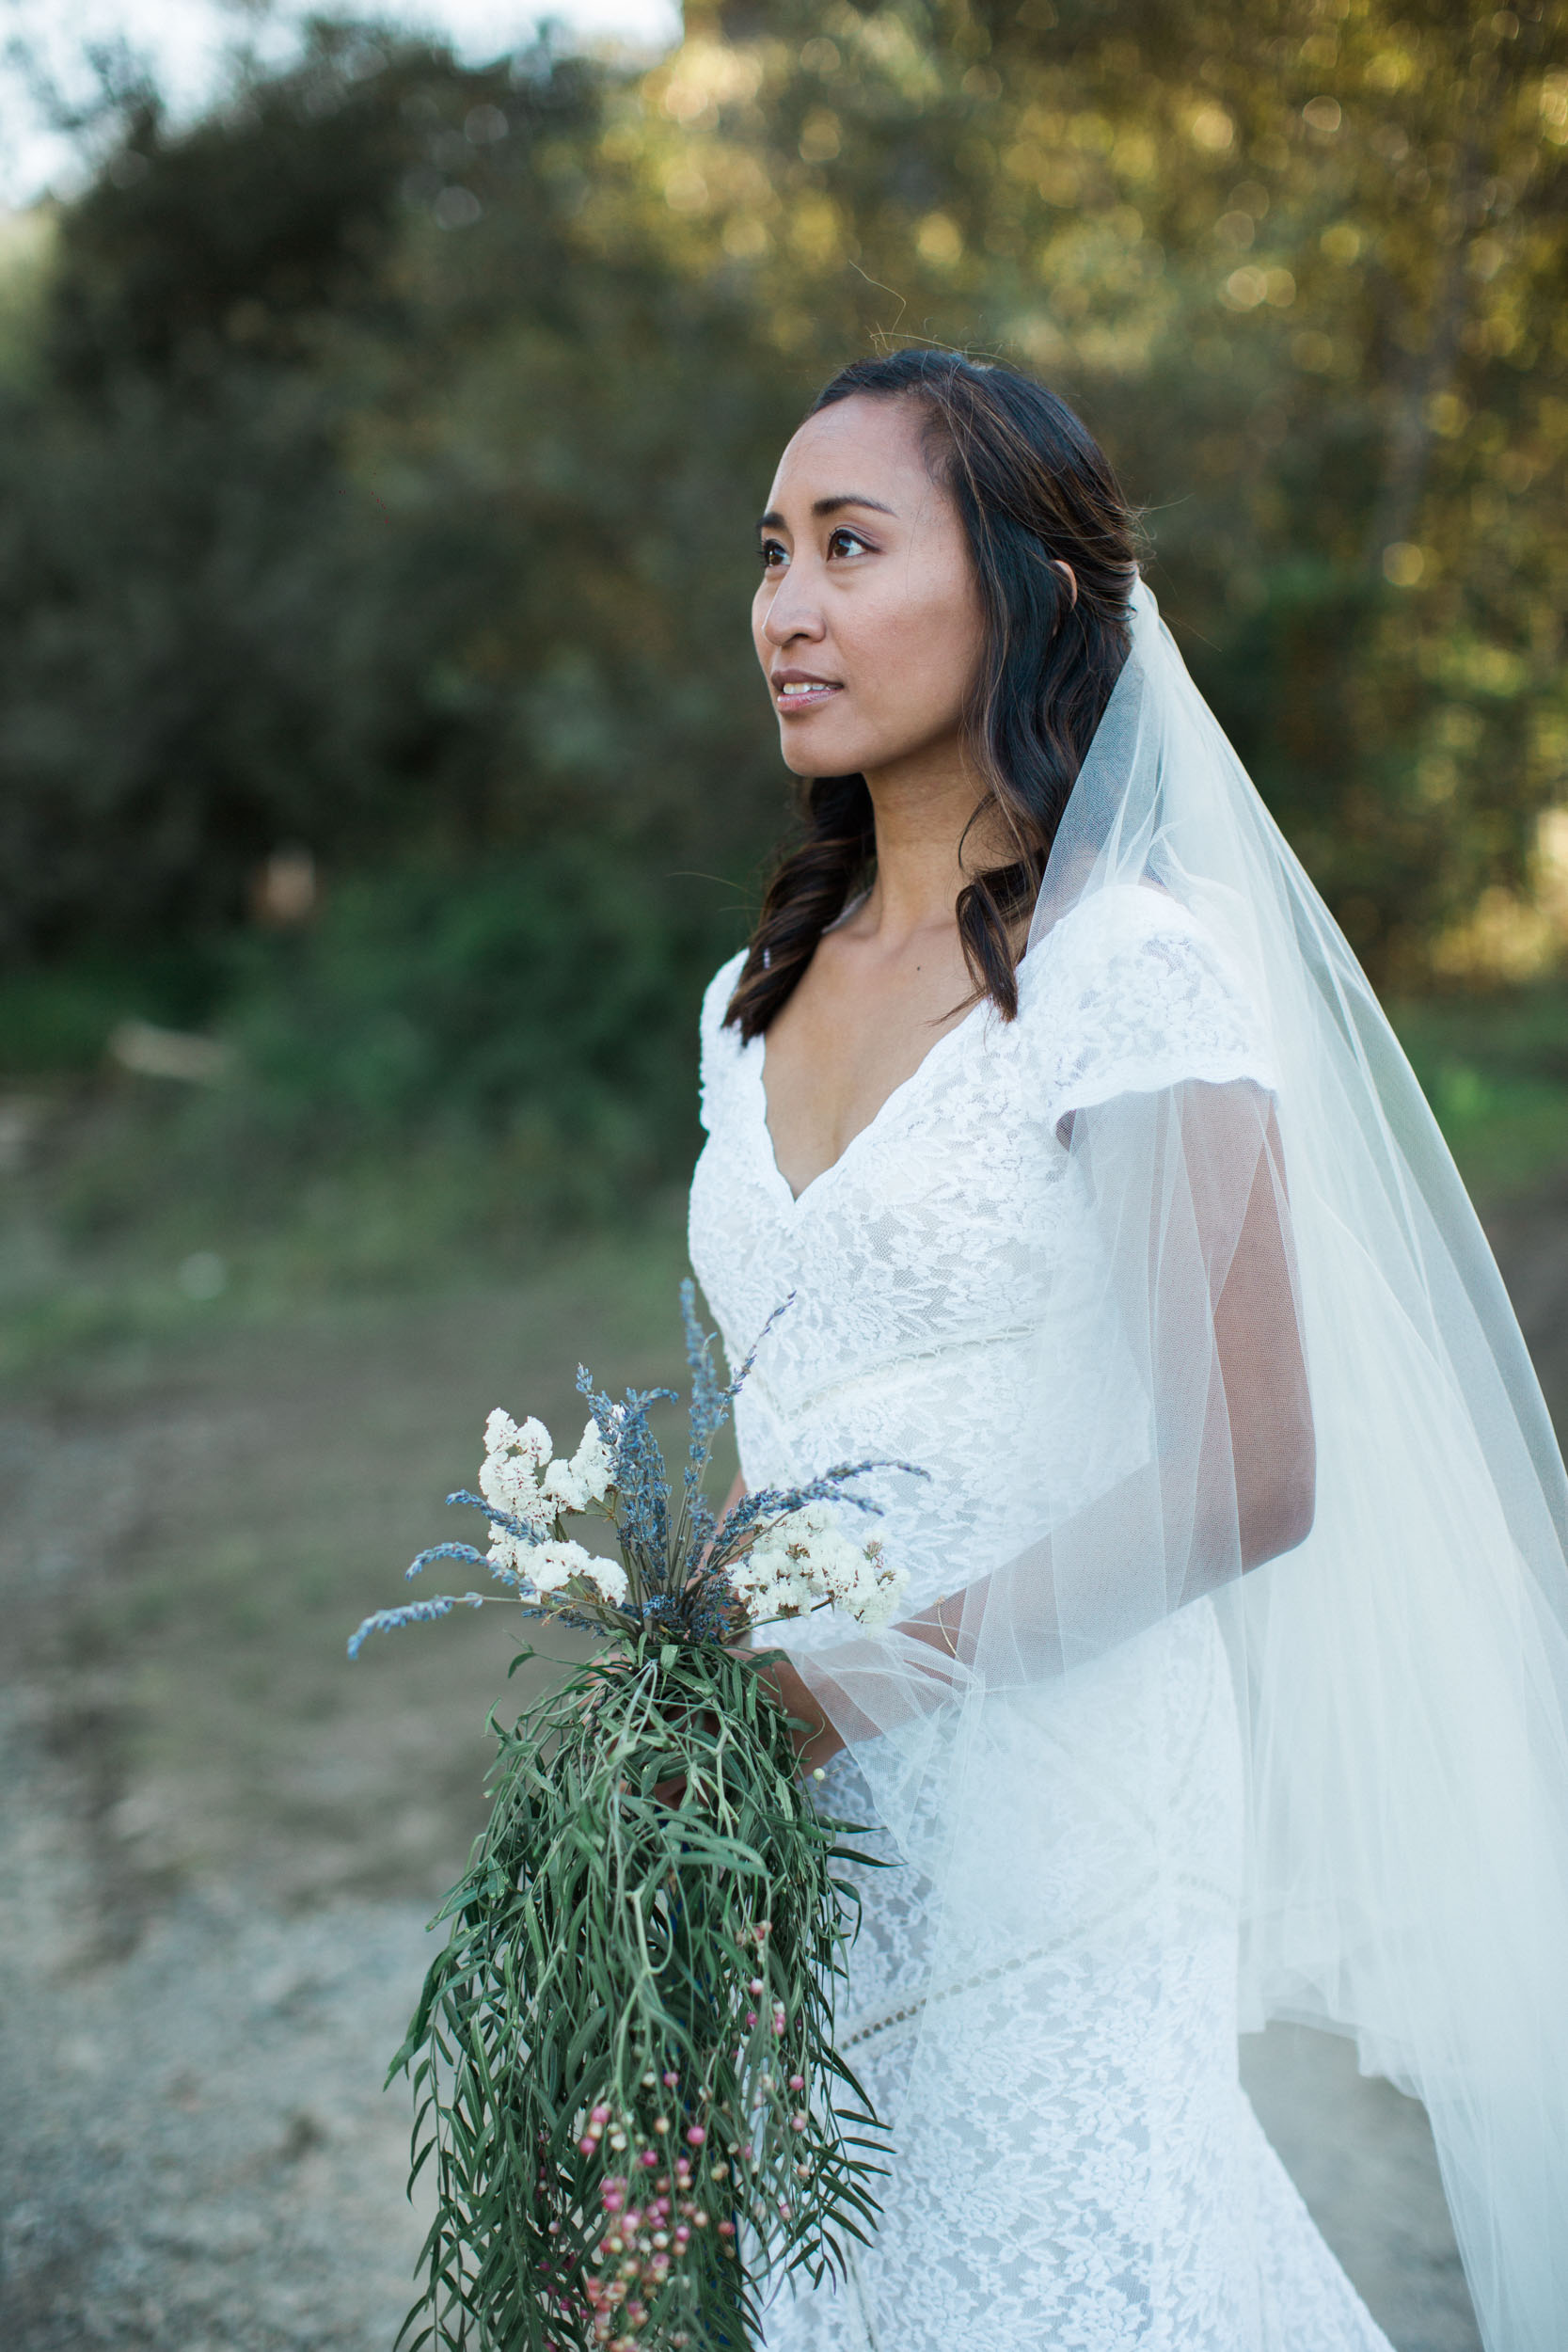 BKM-Photography-Russian-River-Wedding-Redwoods-Guerneville-California-Destination-Wedding-Photographer-0099.jpg